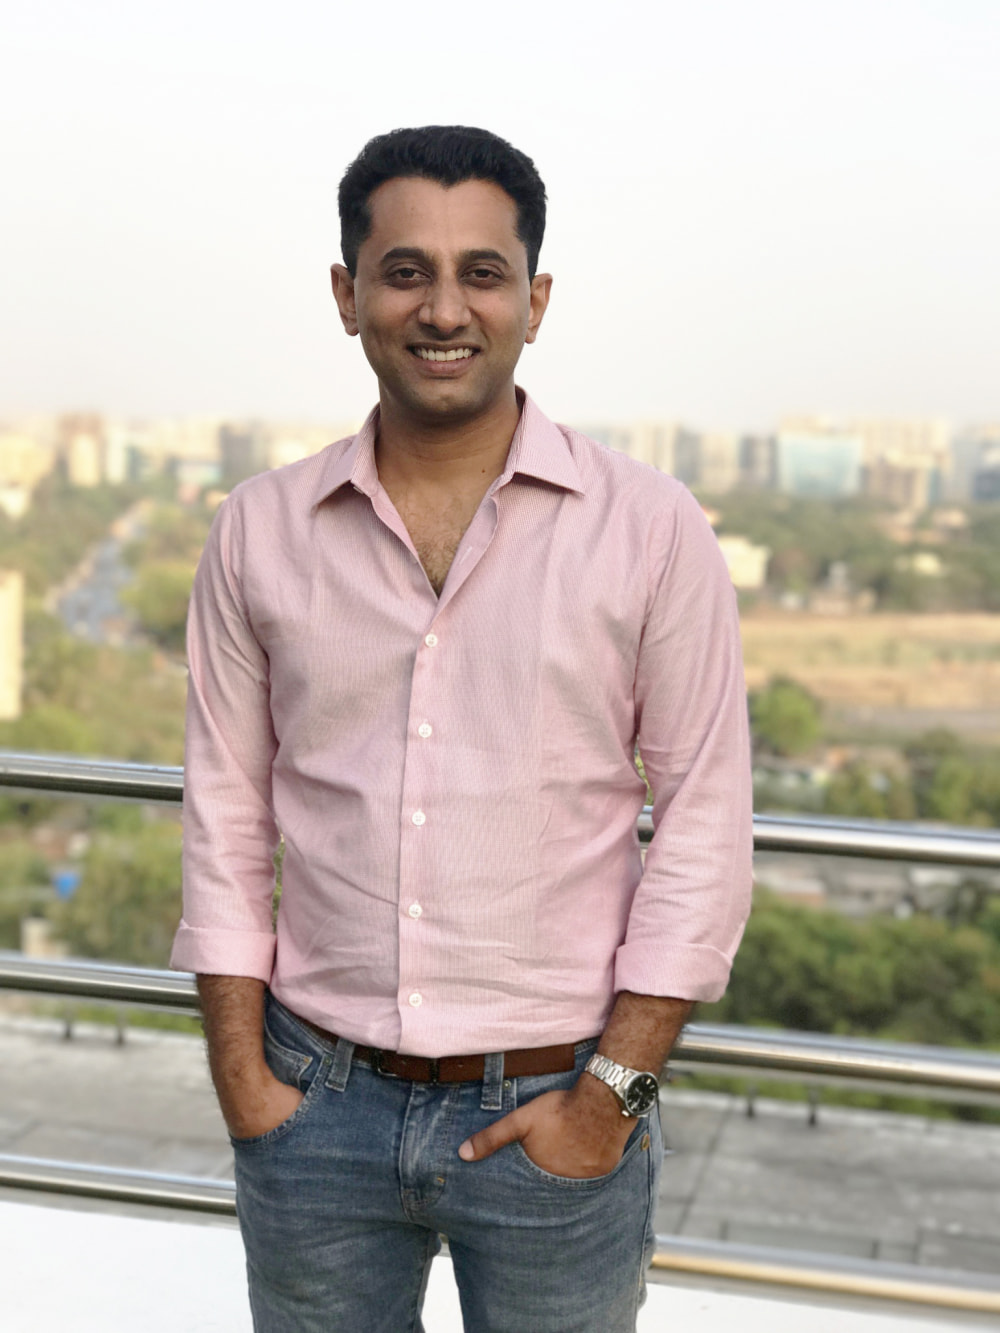 Aditya Kanthy, Group CEO and MD, DDB Mudra Group